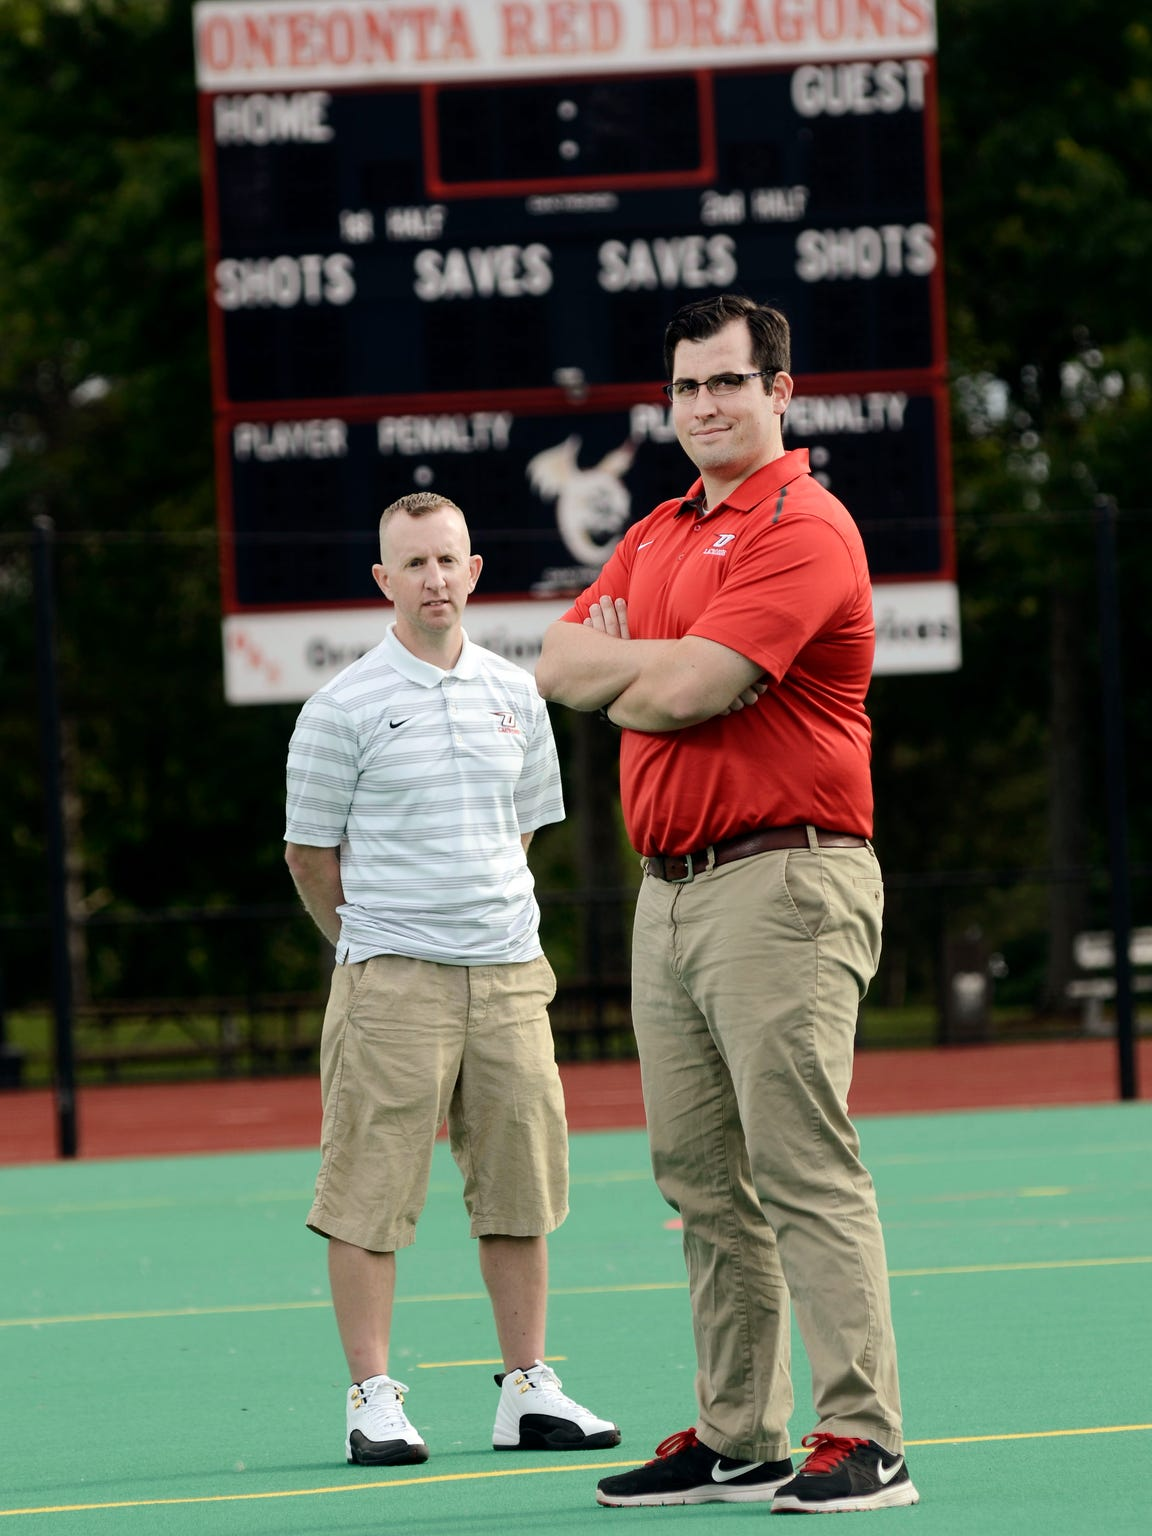 Oneonta lacrosse coach Dan Mahar, left, took a stand against homophobic language in his program and it helped save former player Andrew McIntosh's life.